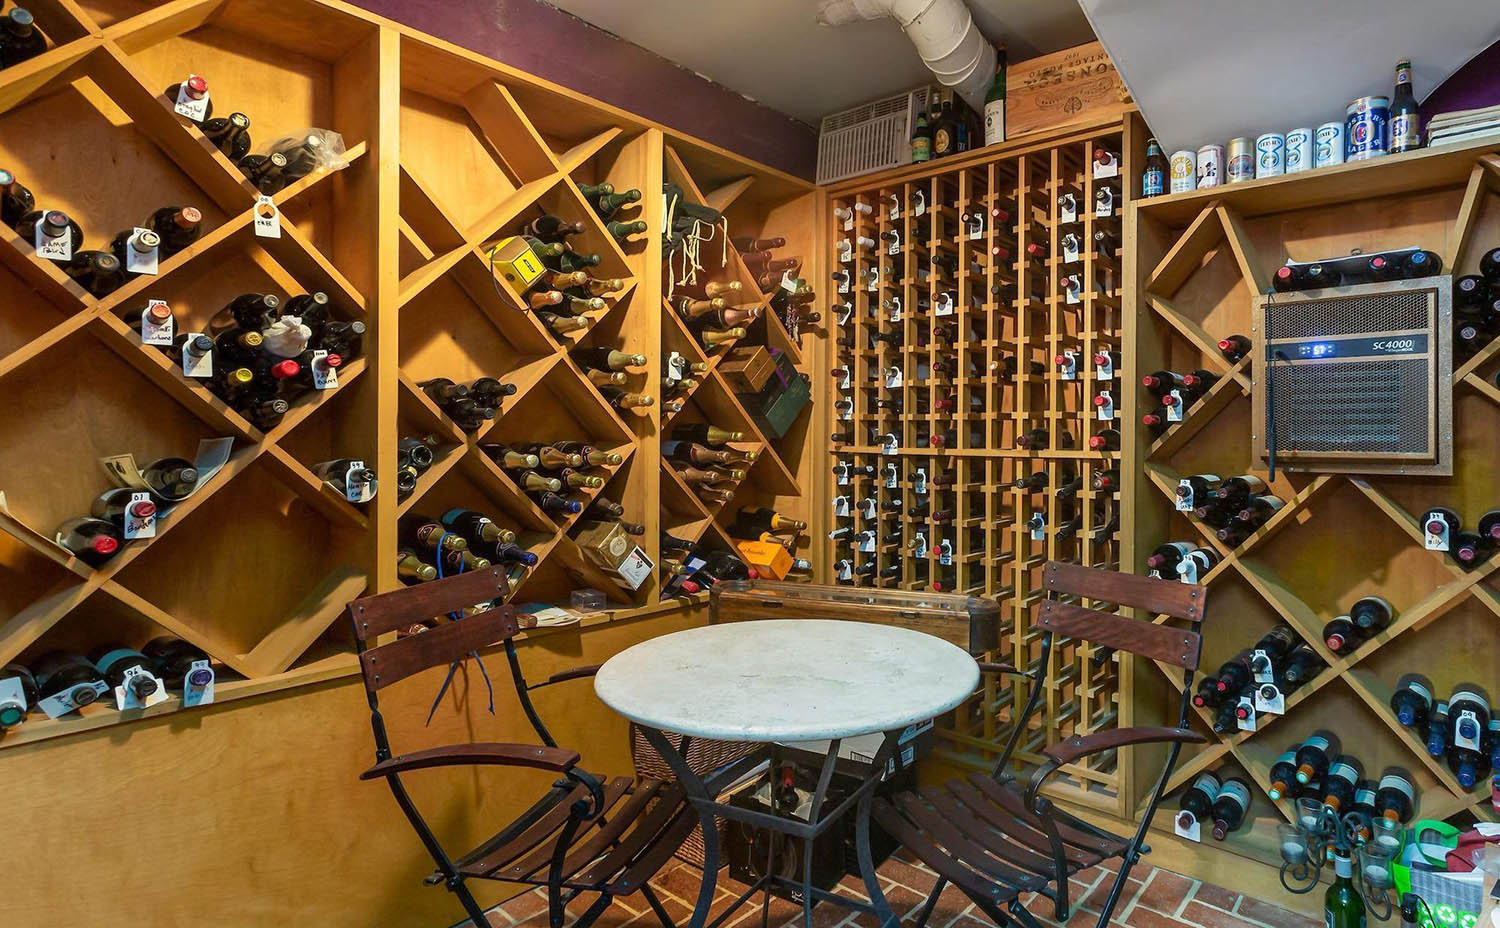 DIY wine cellar with wood racks and table with wall cooling unit